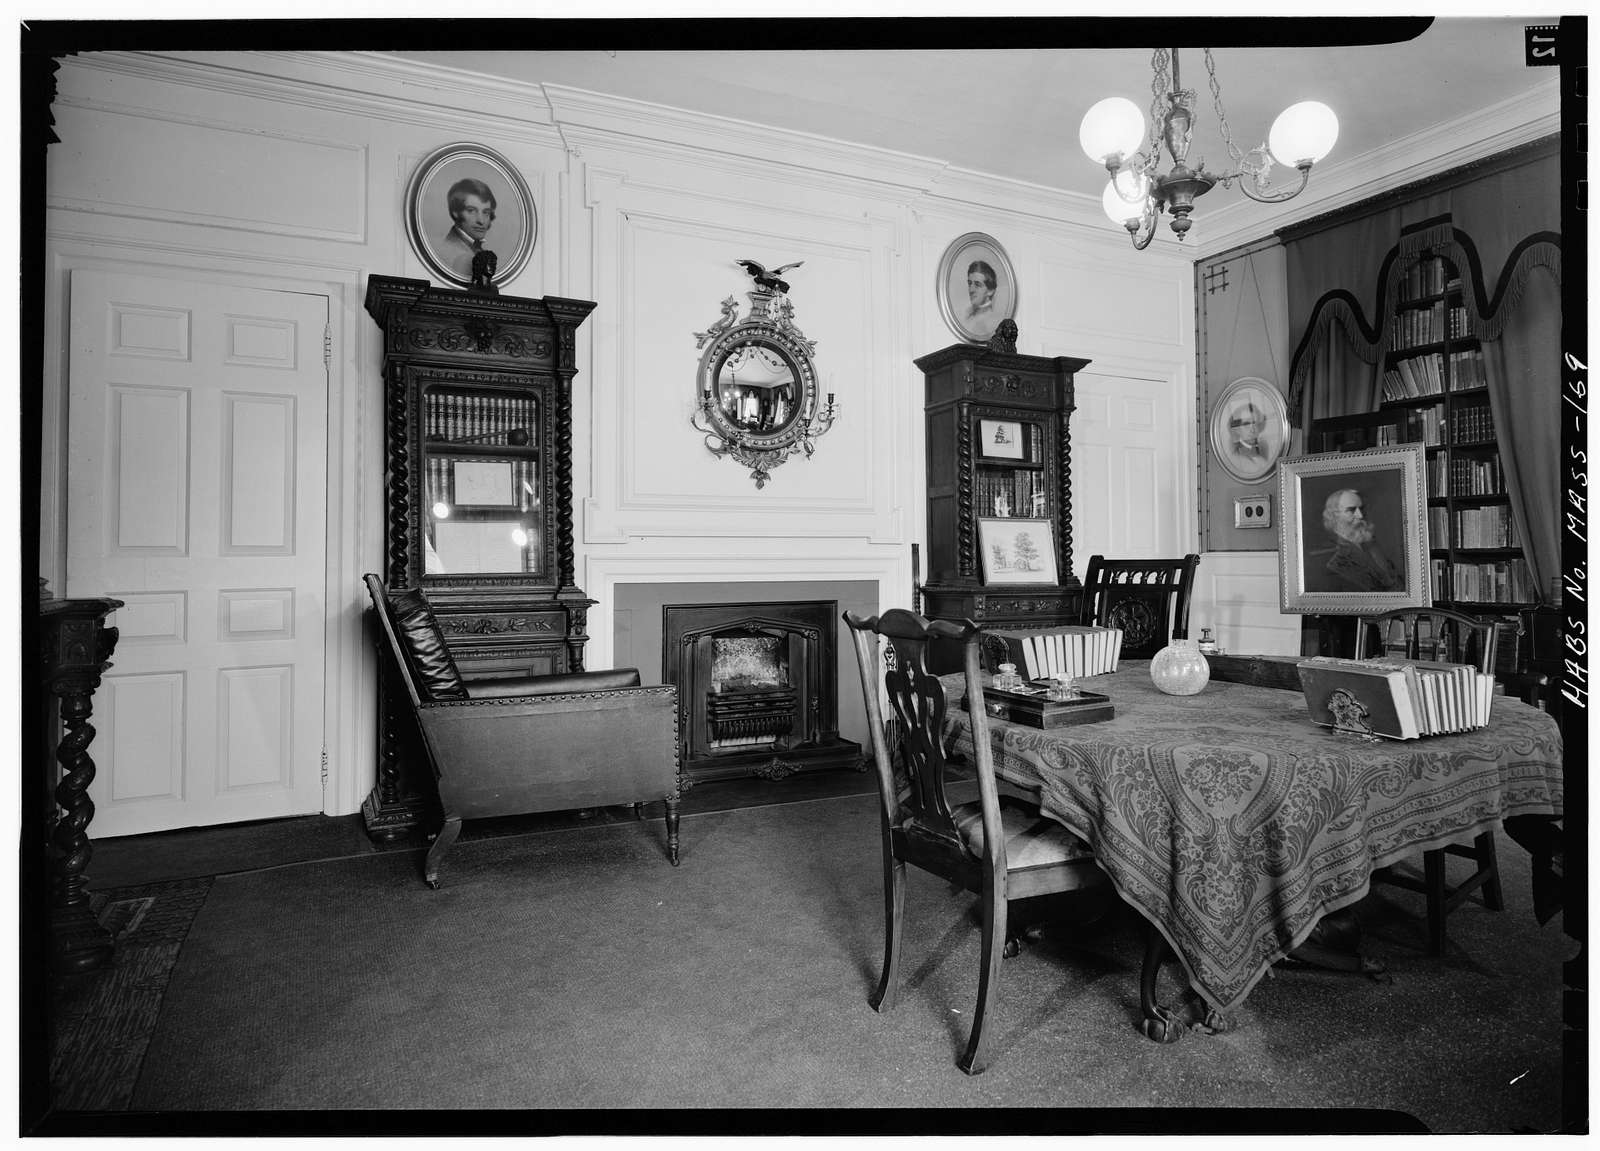 Henry W. Longfellow Place, 105 Brattle Street, Cambridge, Middlesex County, MA